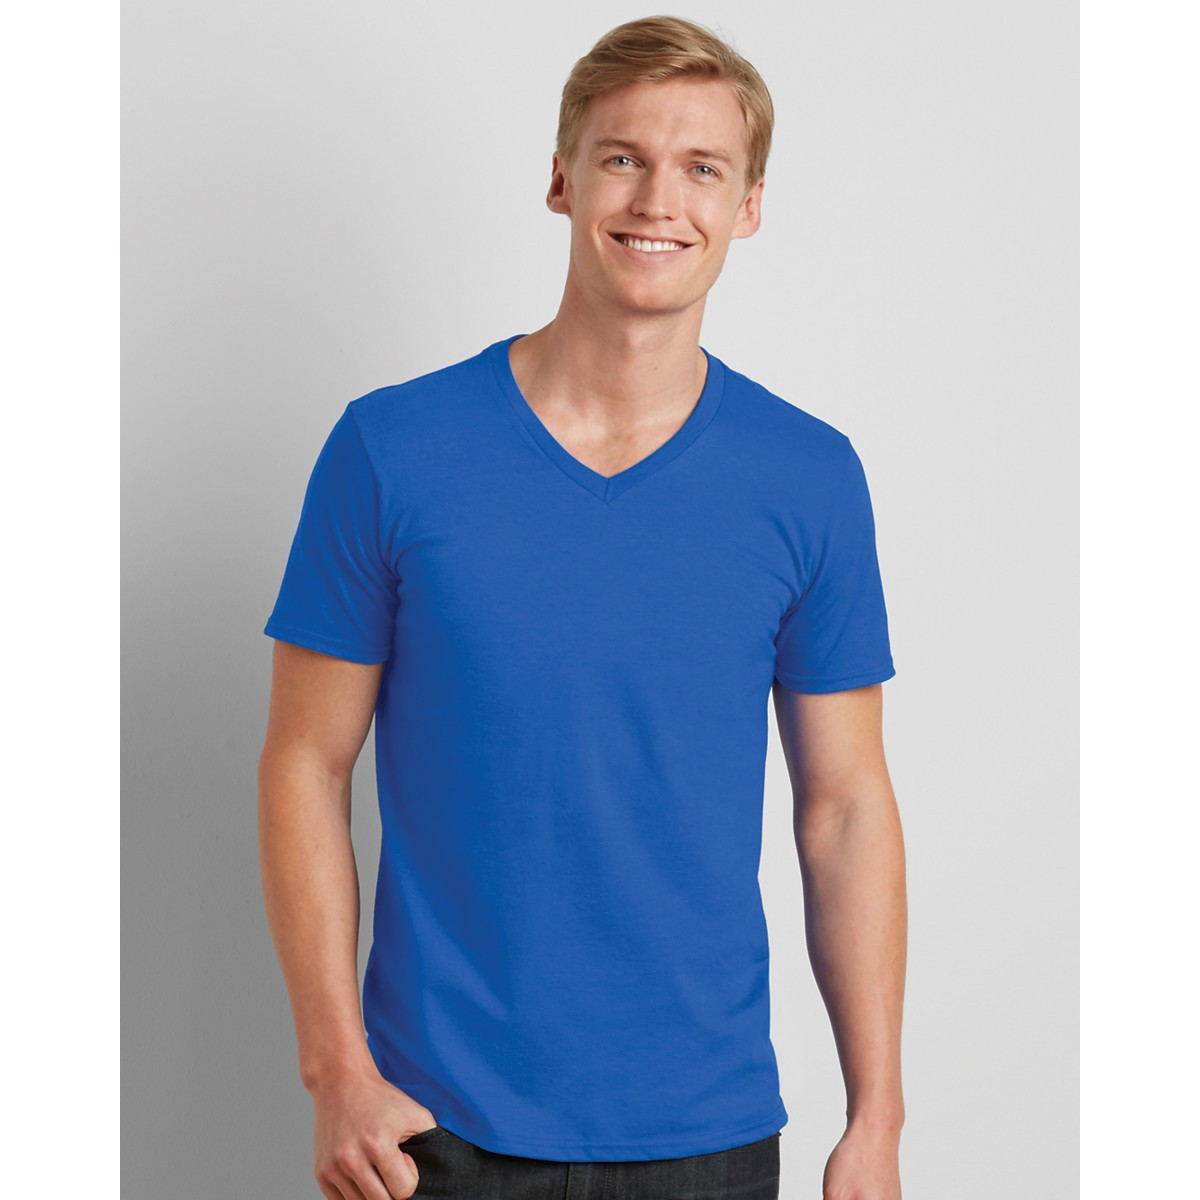 Gildan softstyle men 39 s v neck t shirt for Gildan v neck t shirts for men